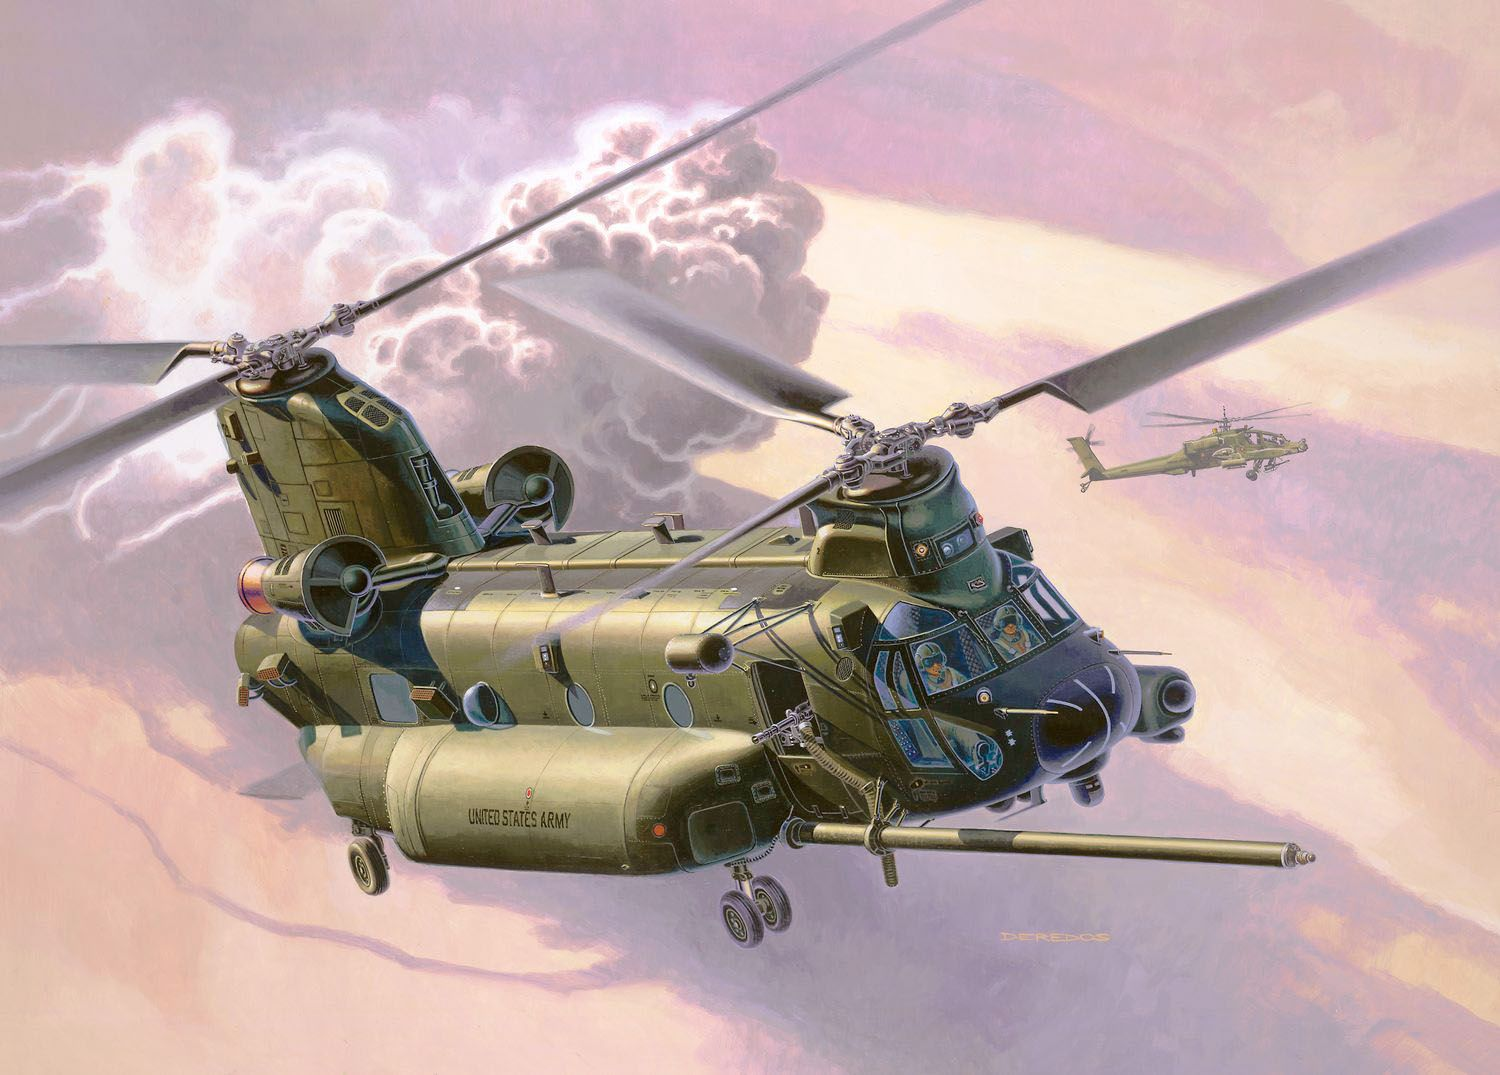 Revell 1/72 Scale Model Set - MH-47E Chinook